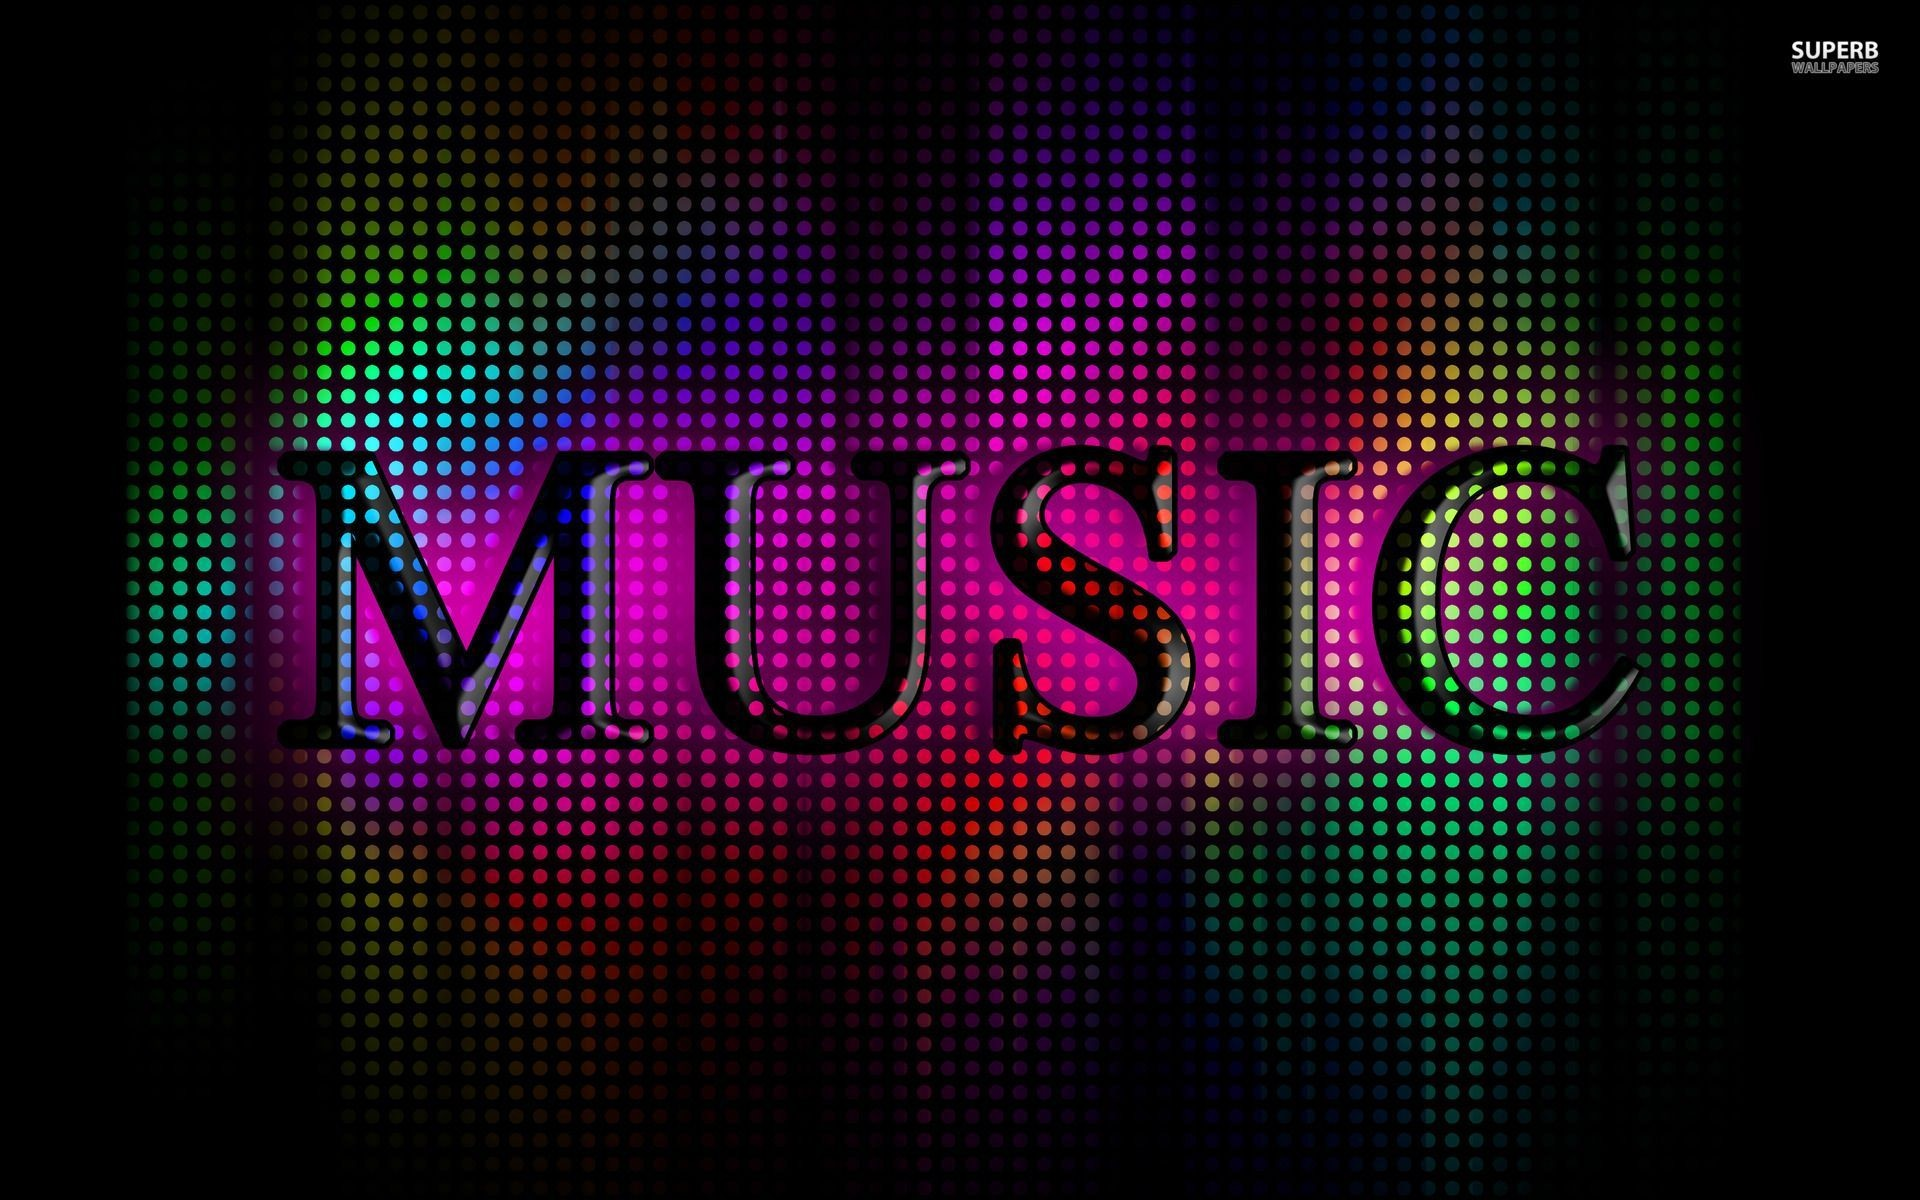 Rainbow Music Wallpaper Raven9000111 Request By Hardii: Best Music Wallpapers (72+ Background Pictures